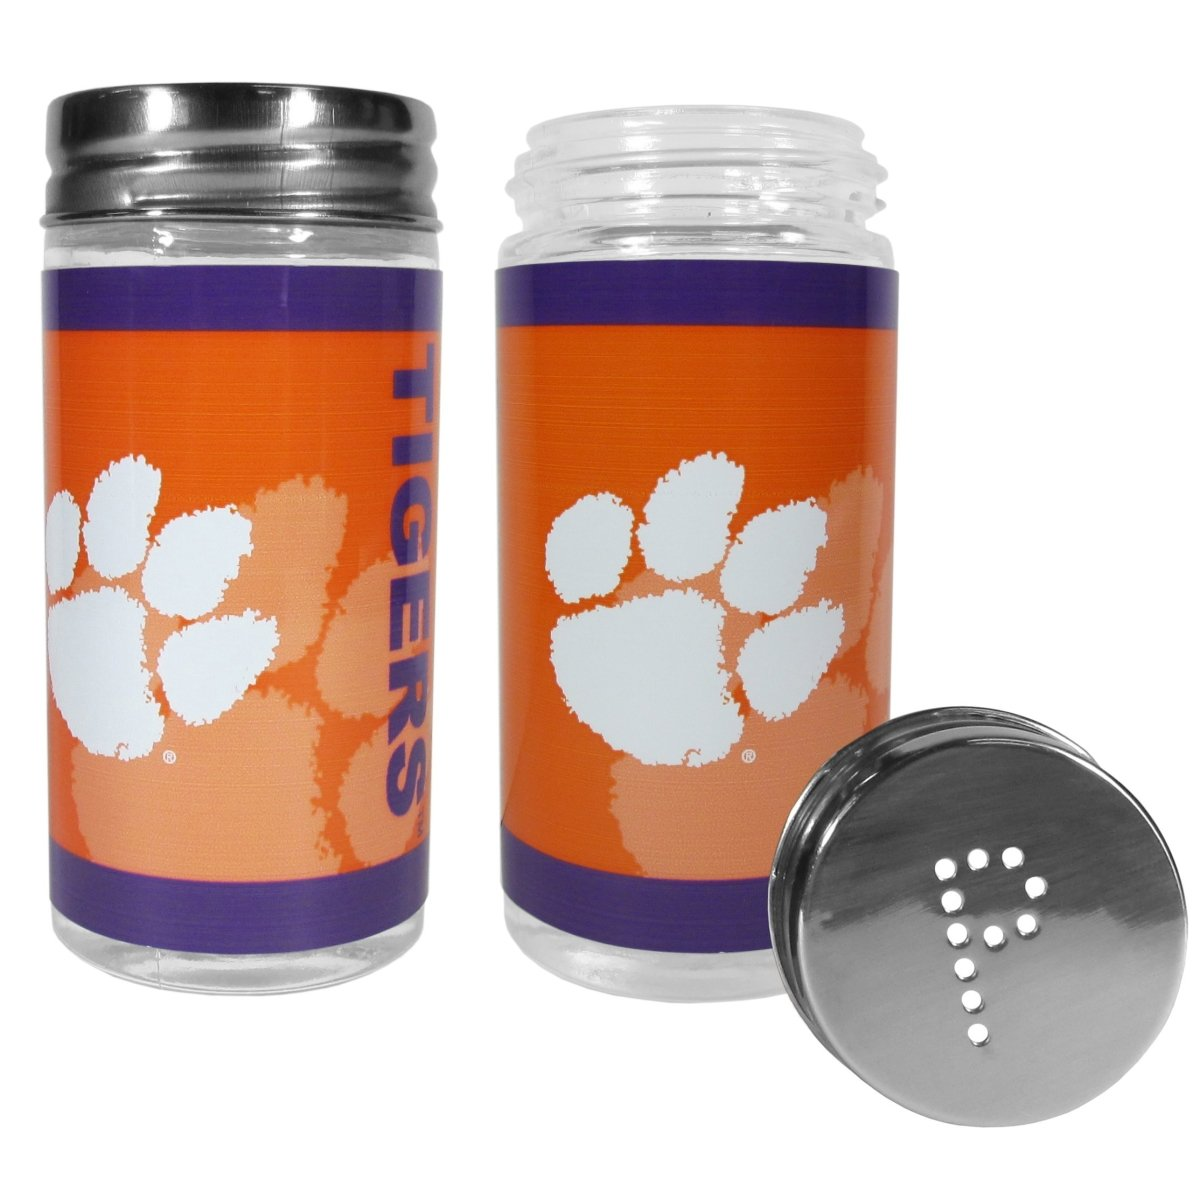 Siskiyou Clemson Tigers Glass Salt and Pepper Shakers - Mr. Knickerbocker